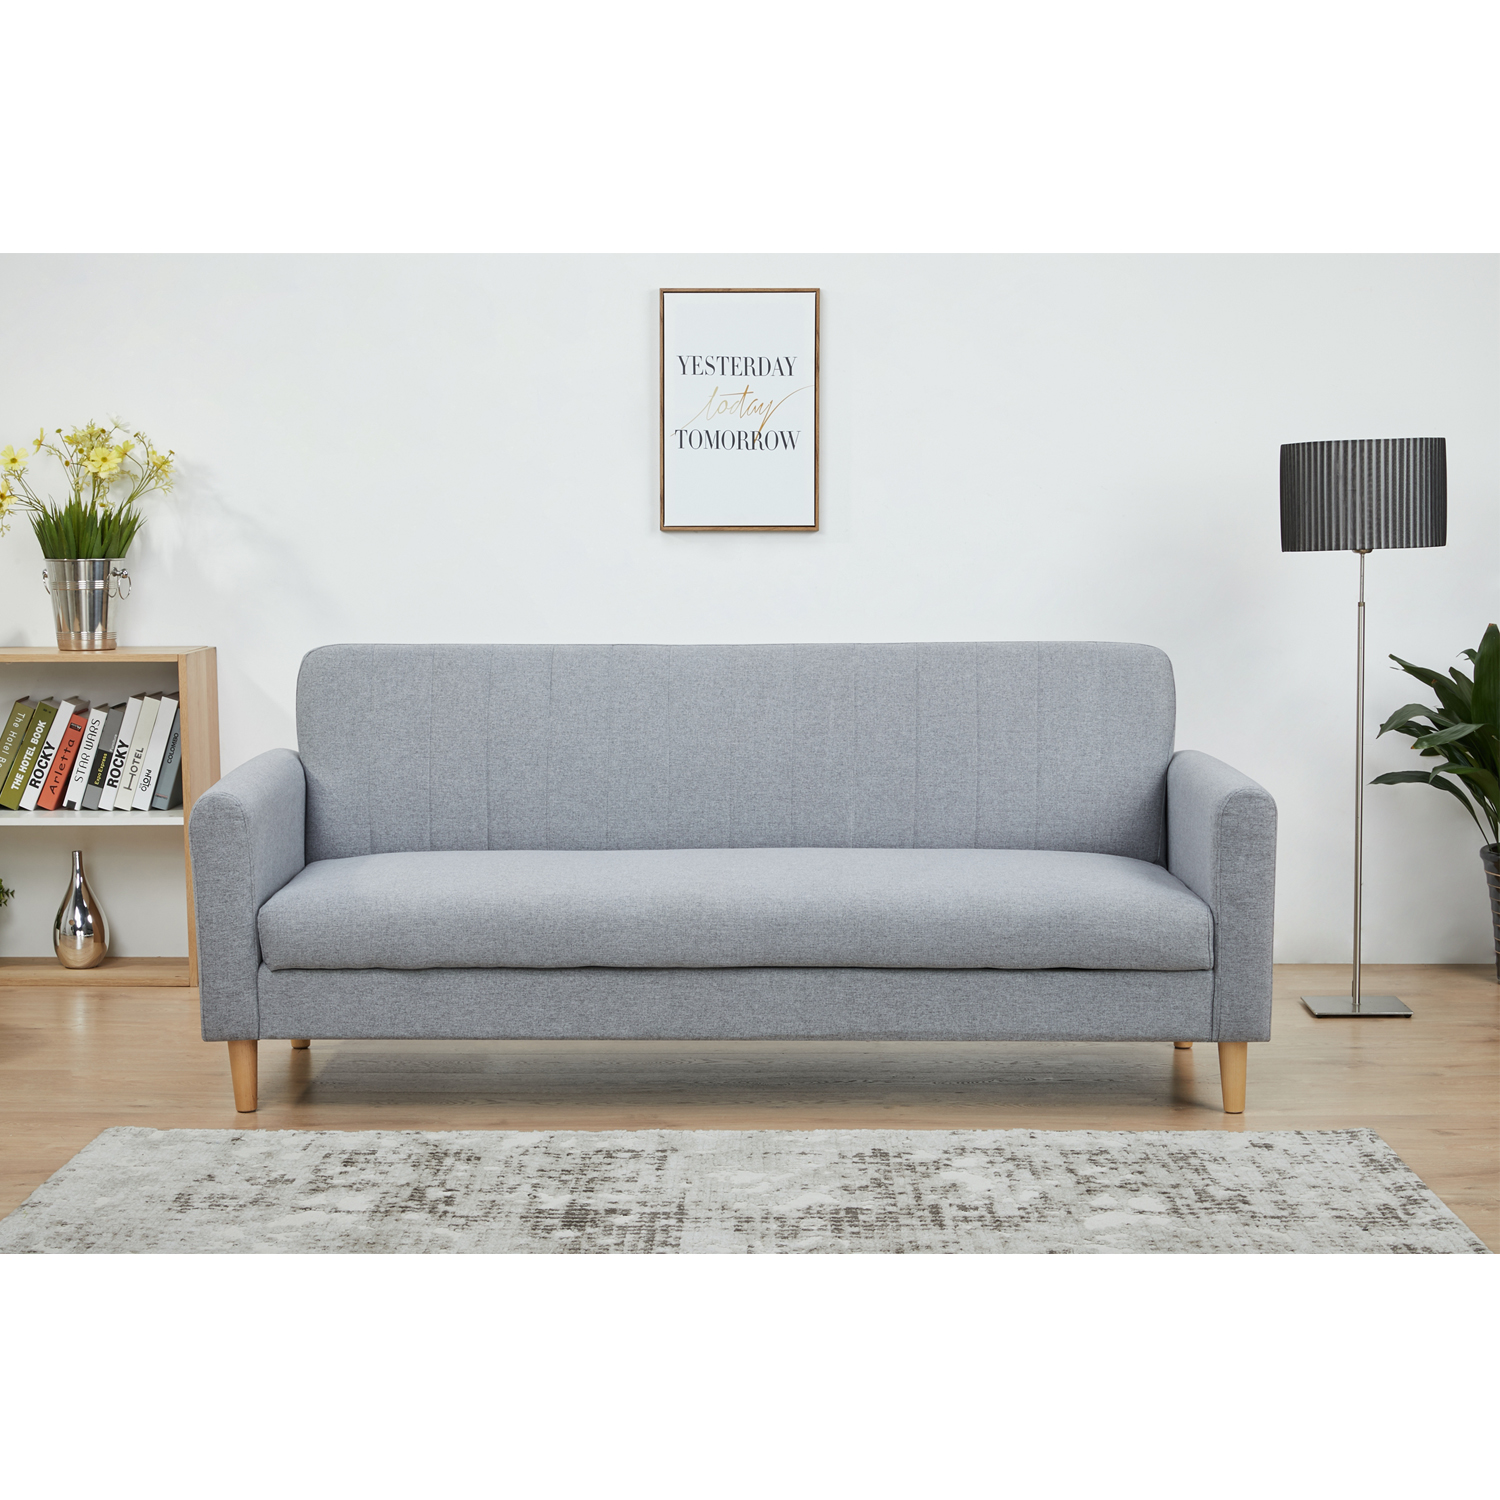 Picture of: Furniture Source Philippines Falhensberg Sofabed Light Gray